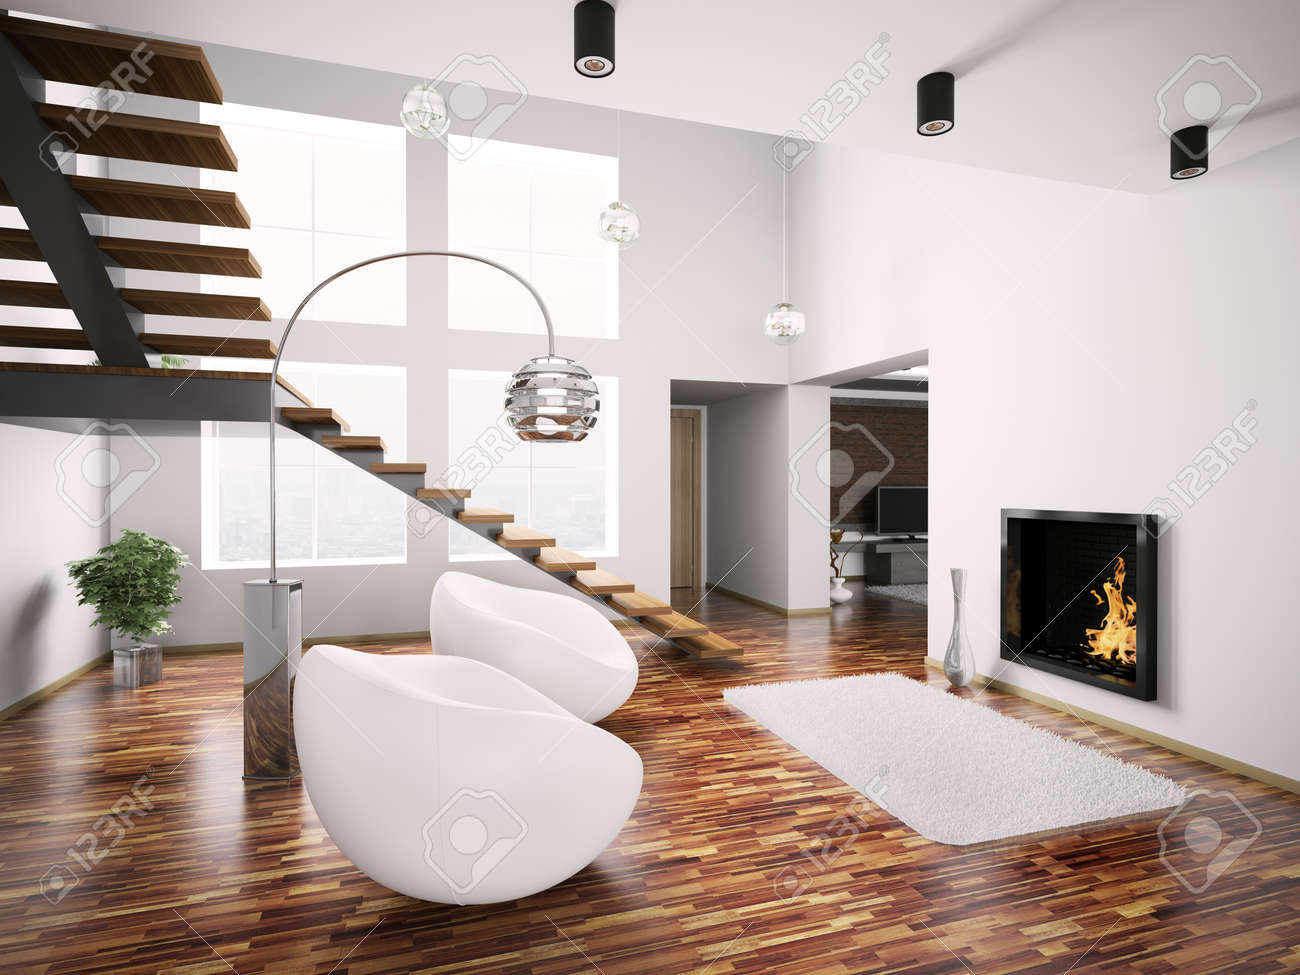 Modern interior with fireplace and staircase 3d render Stock Photo - 7639336